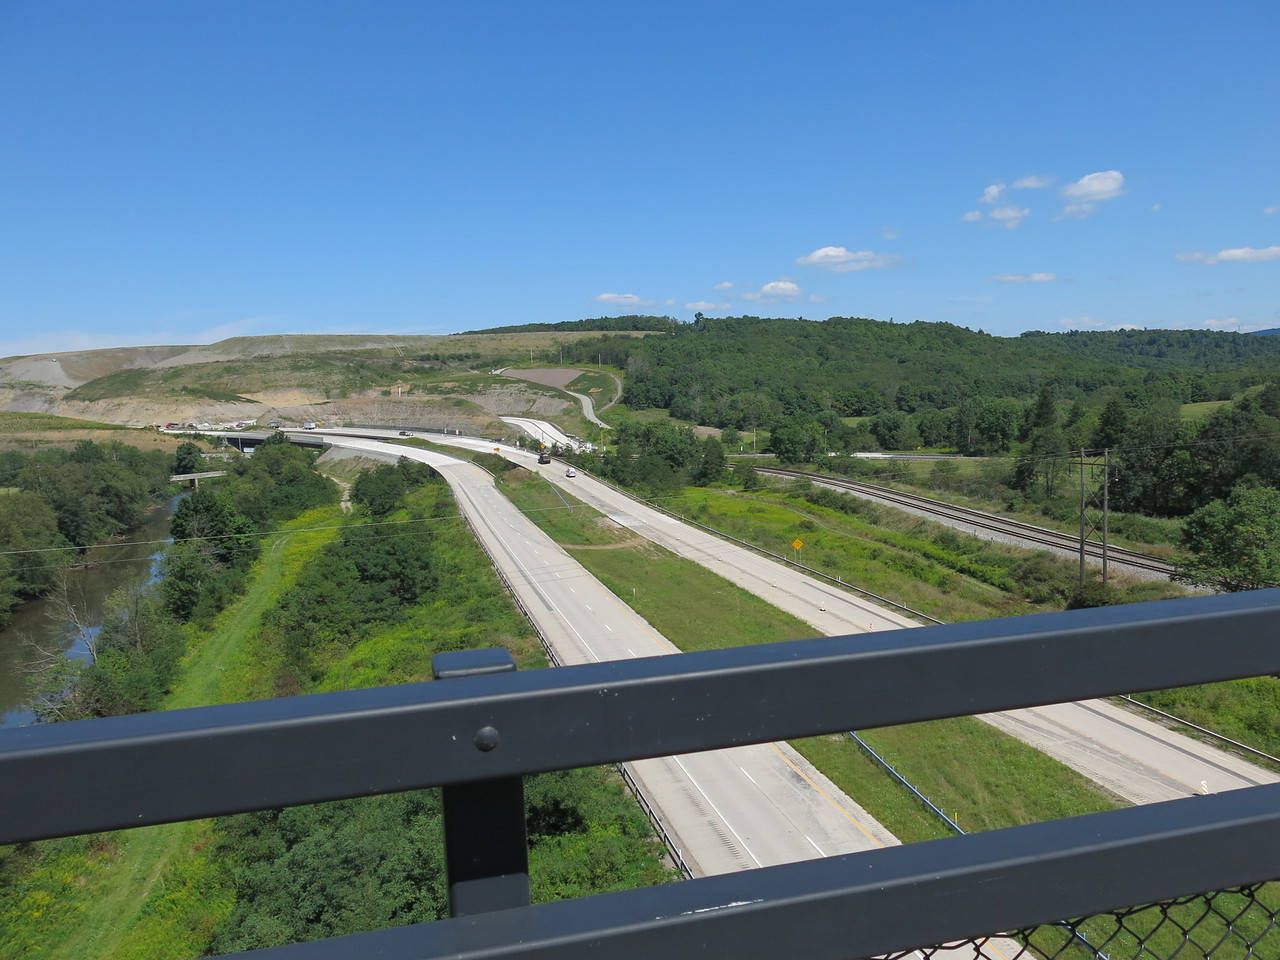 Looking north at the river, highway and rail line